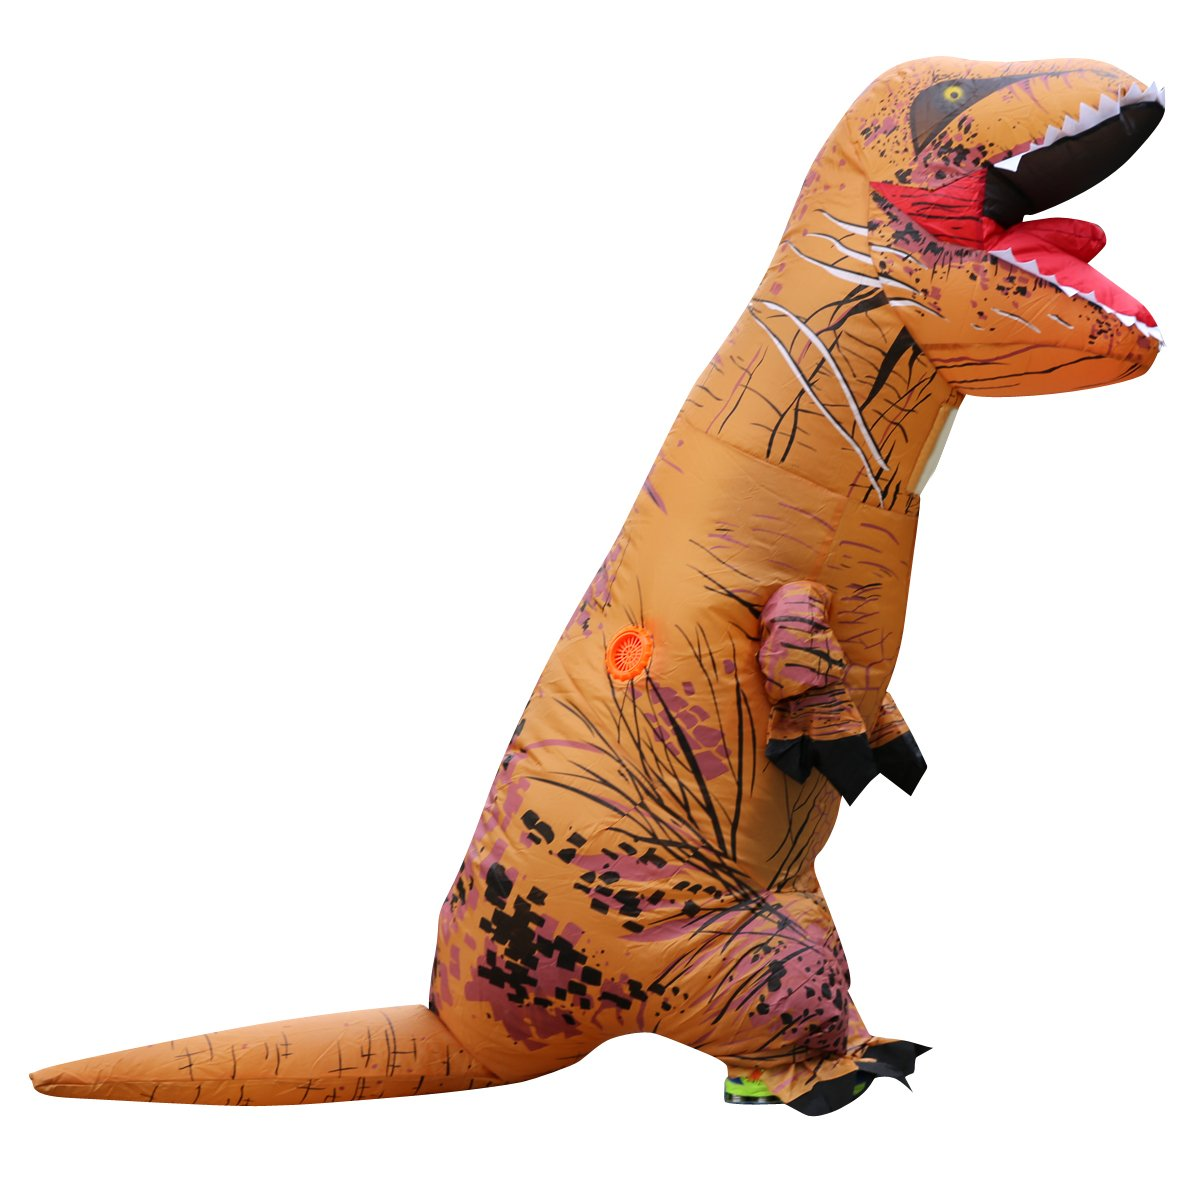 WEHOPS Inflatable T-Rex Costume For Kids Novelty Blow Up Dino Toys For Children